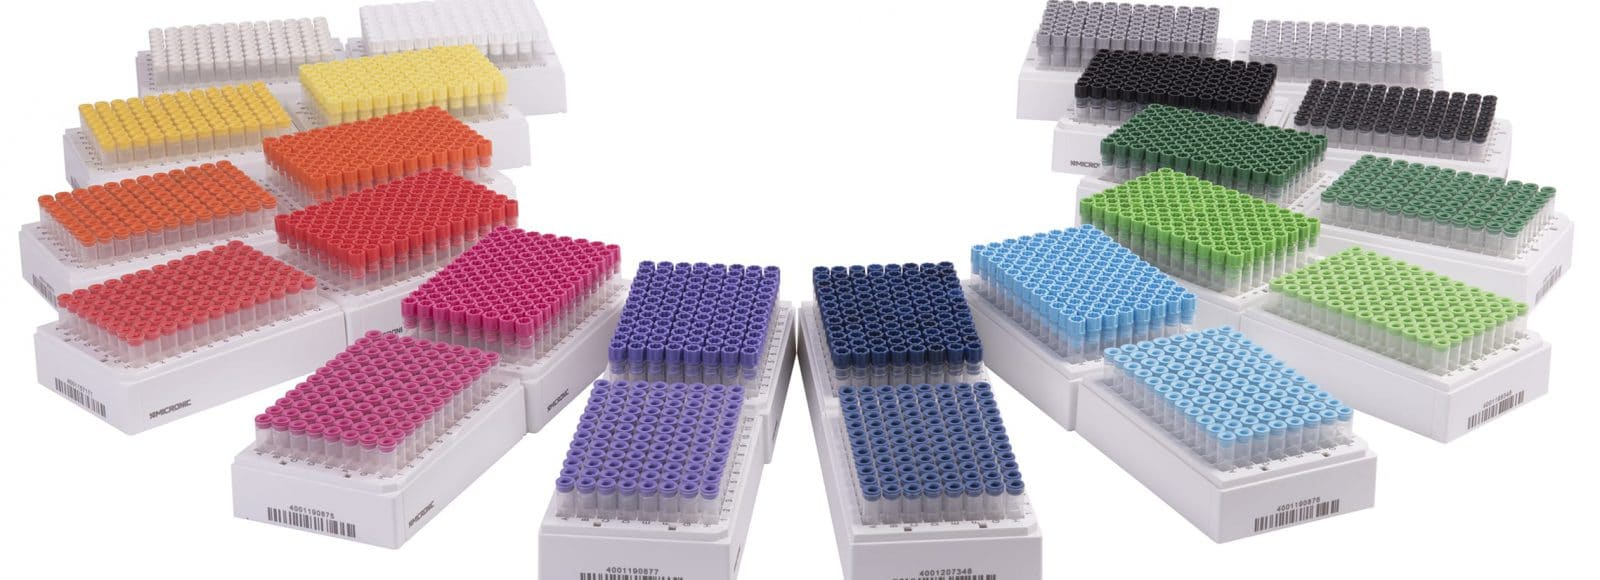 Micronic's complete cap color range for push caps and screw caps